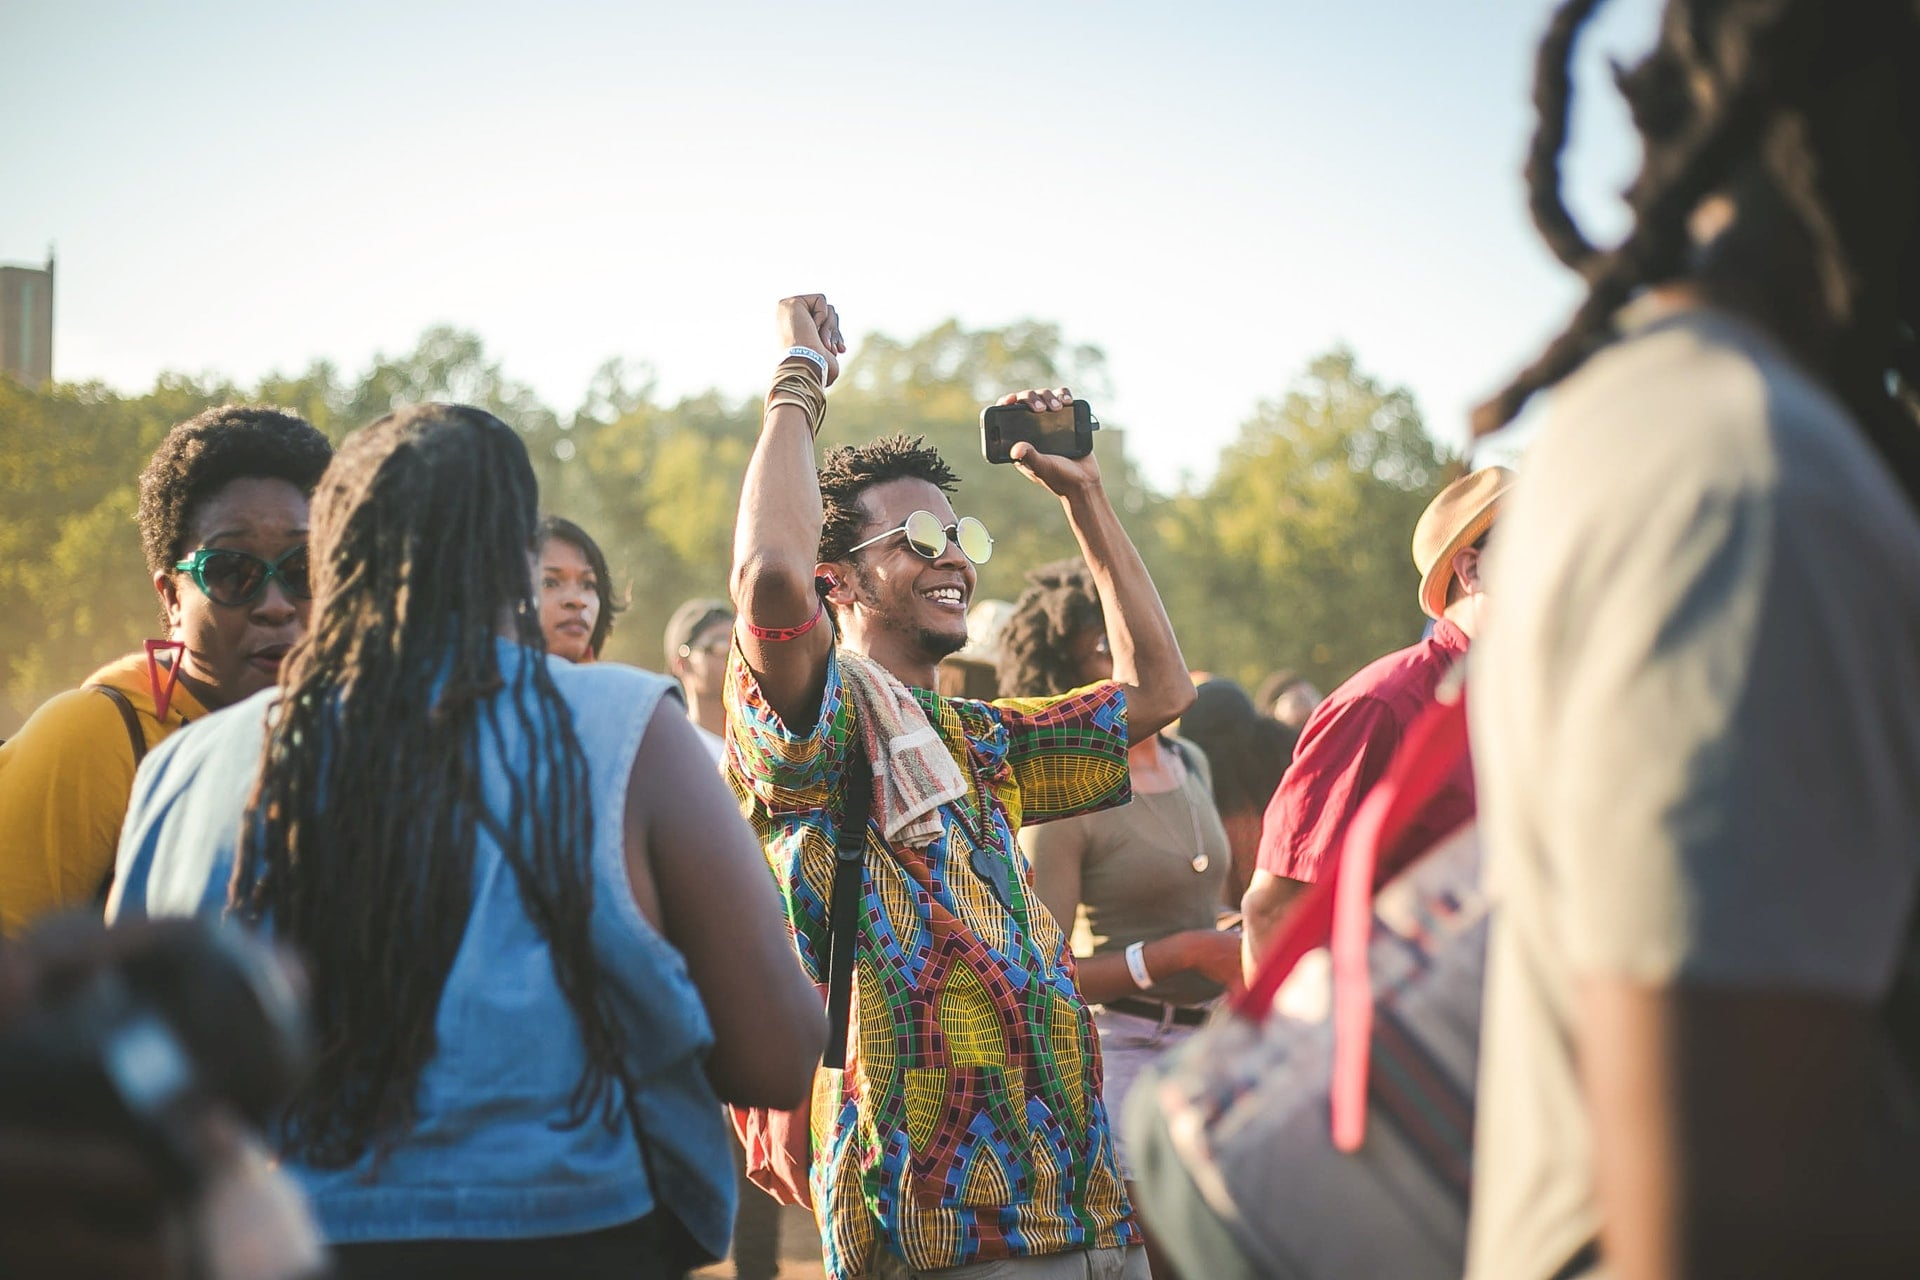 man-in-vibrant-shirt-and-sunglasses-dancing-in-festival-crowd-in-daytime-packing-list-for-festival